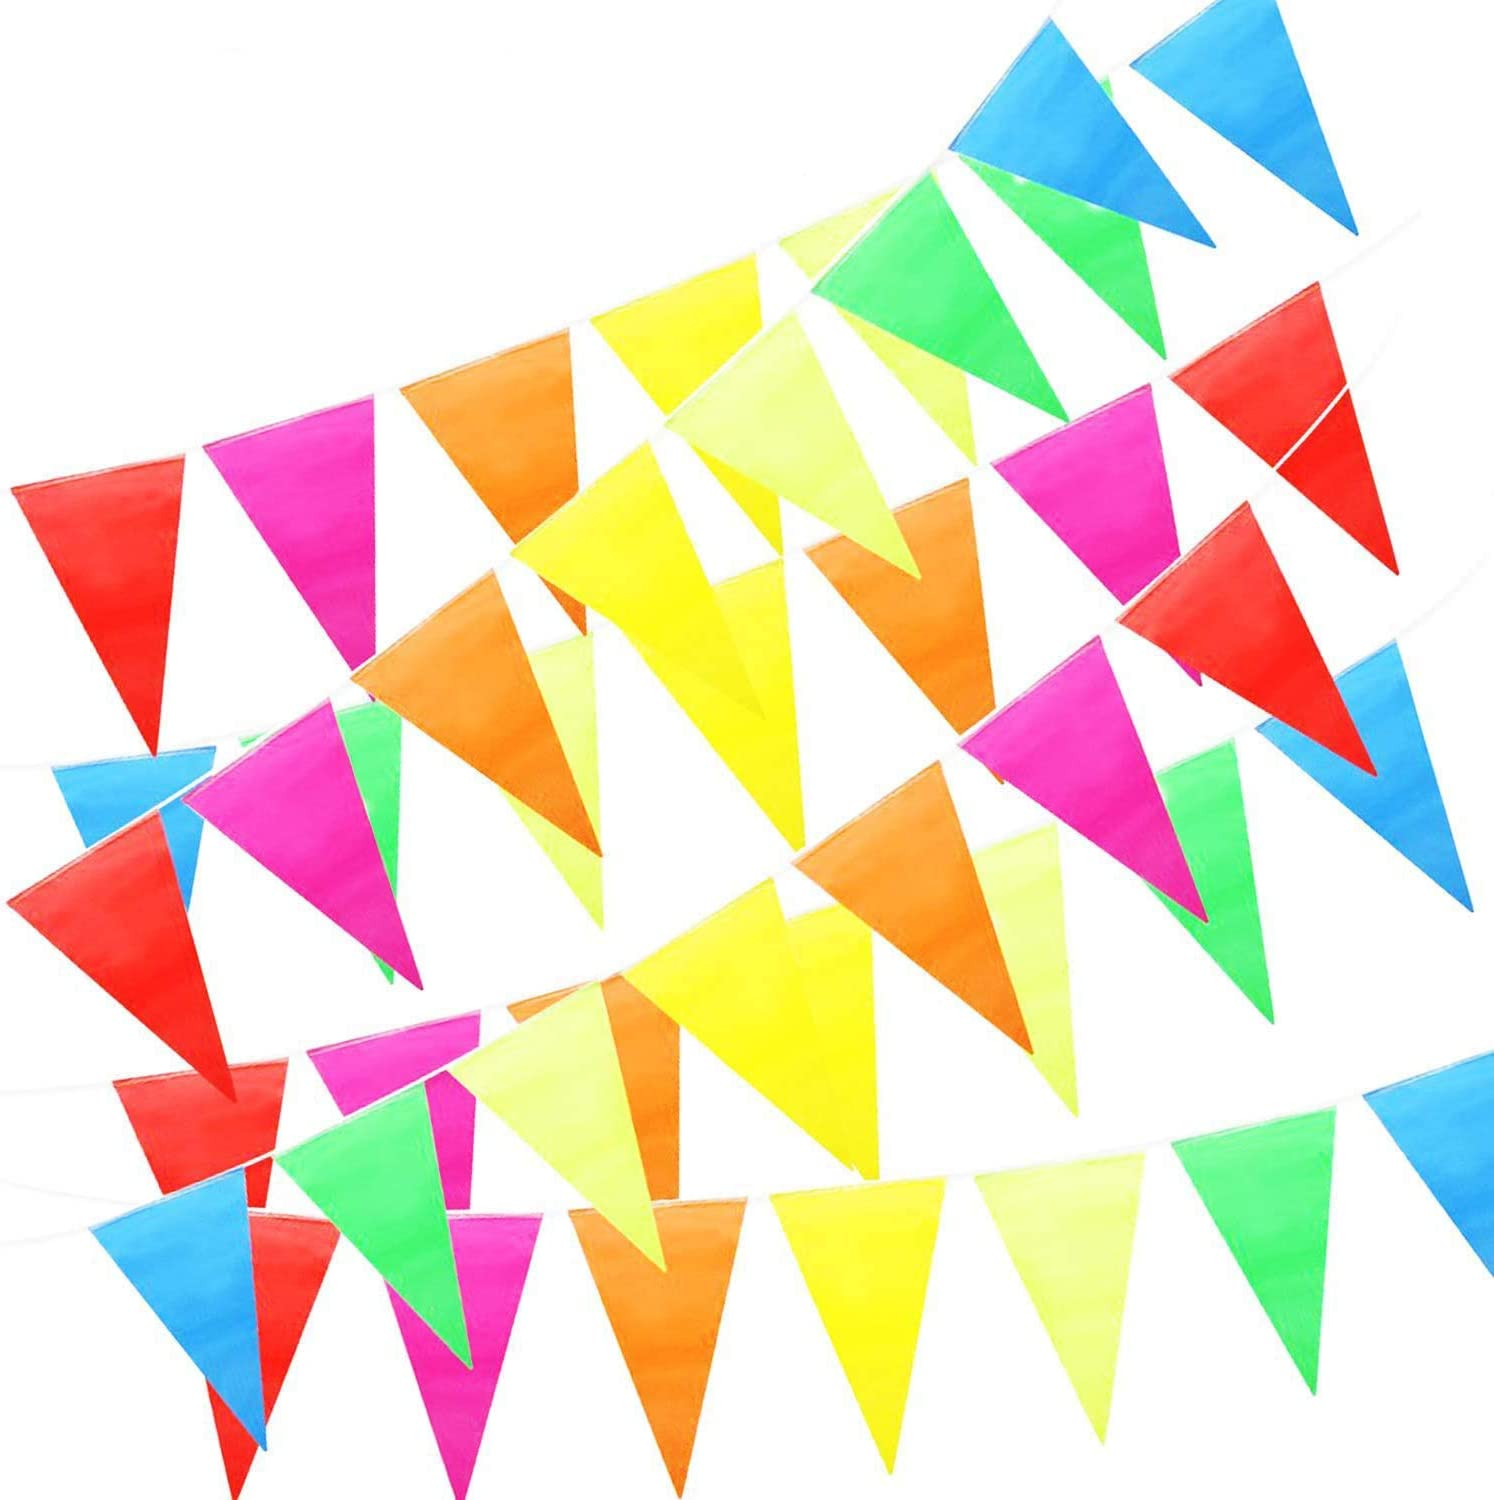 100 m Colorful Fabric Bunting Pennant Outdoor Banner Advertising Hanging Flag